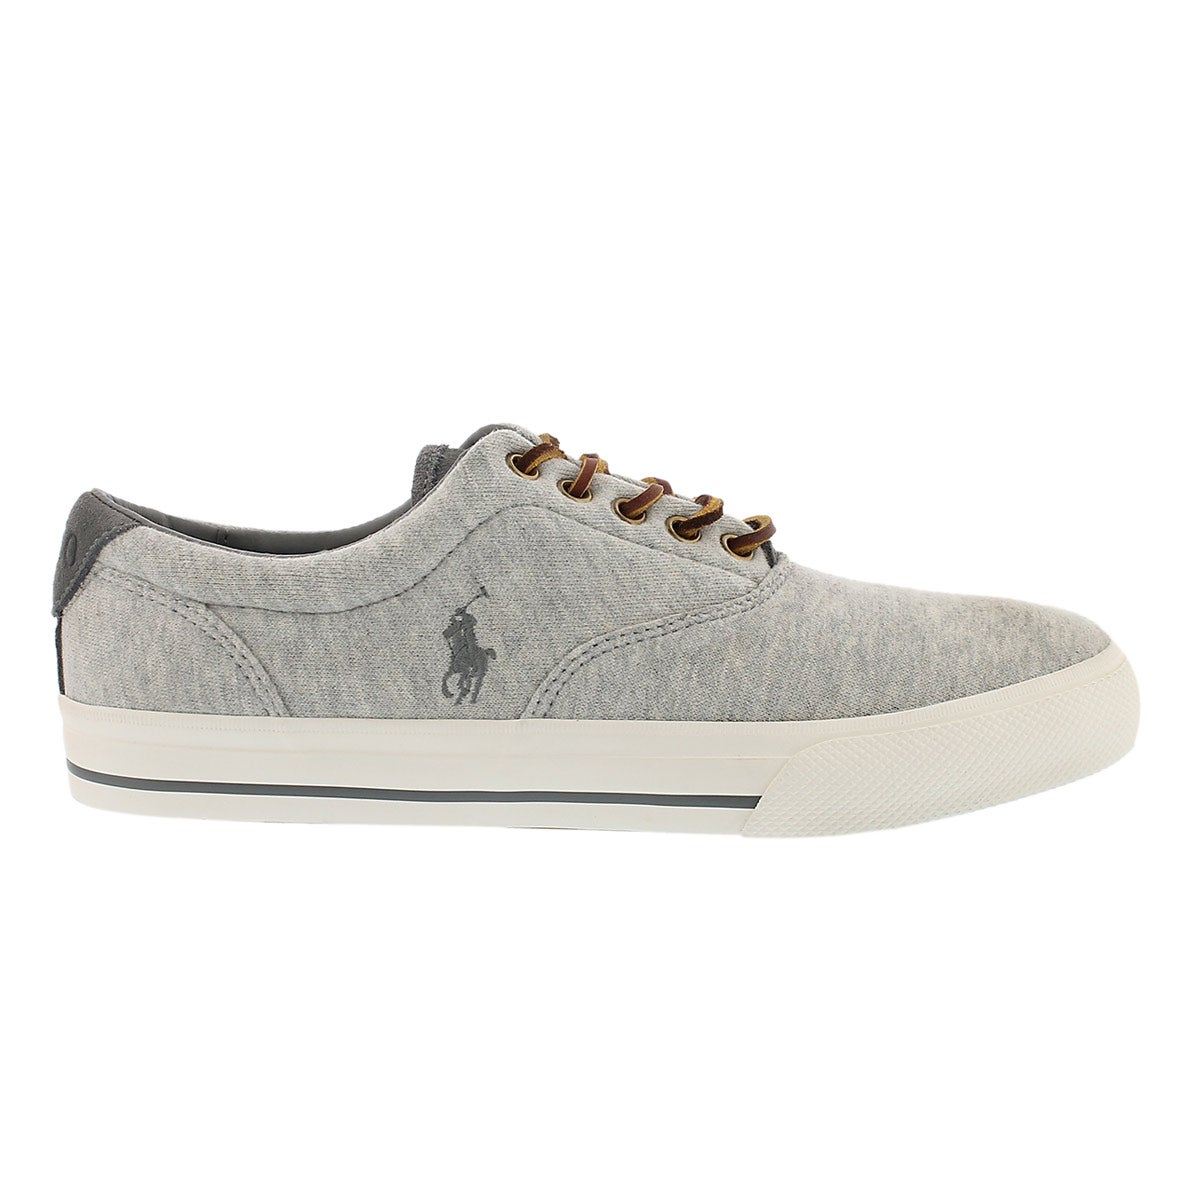 Mns Vaughn grey fleece sneaker